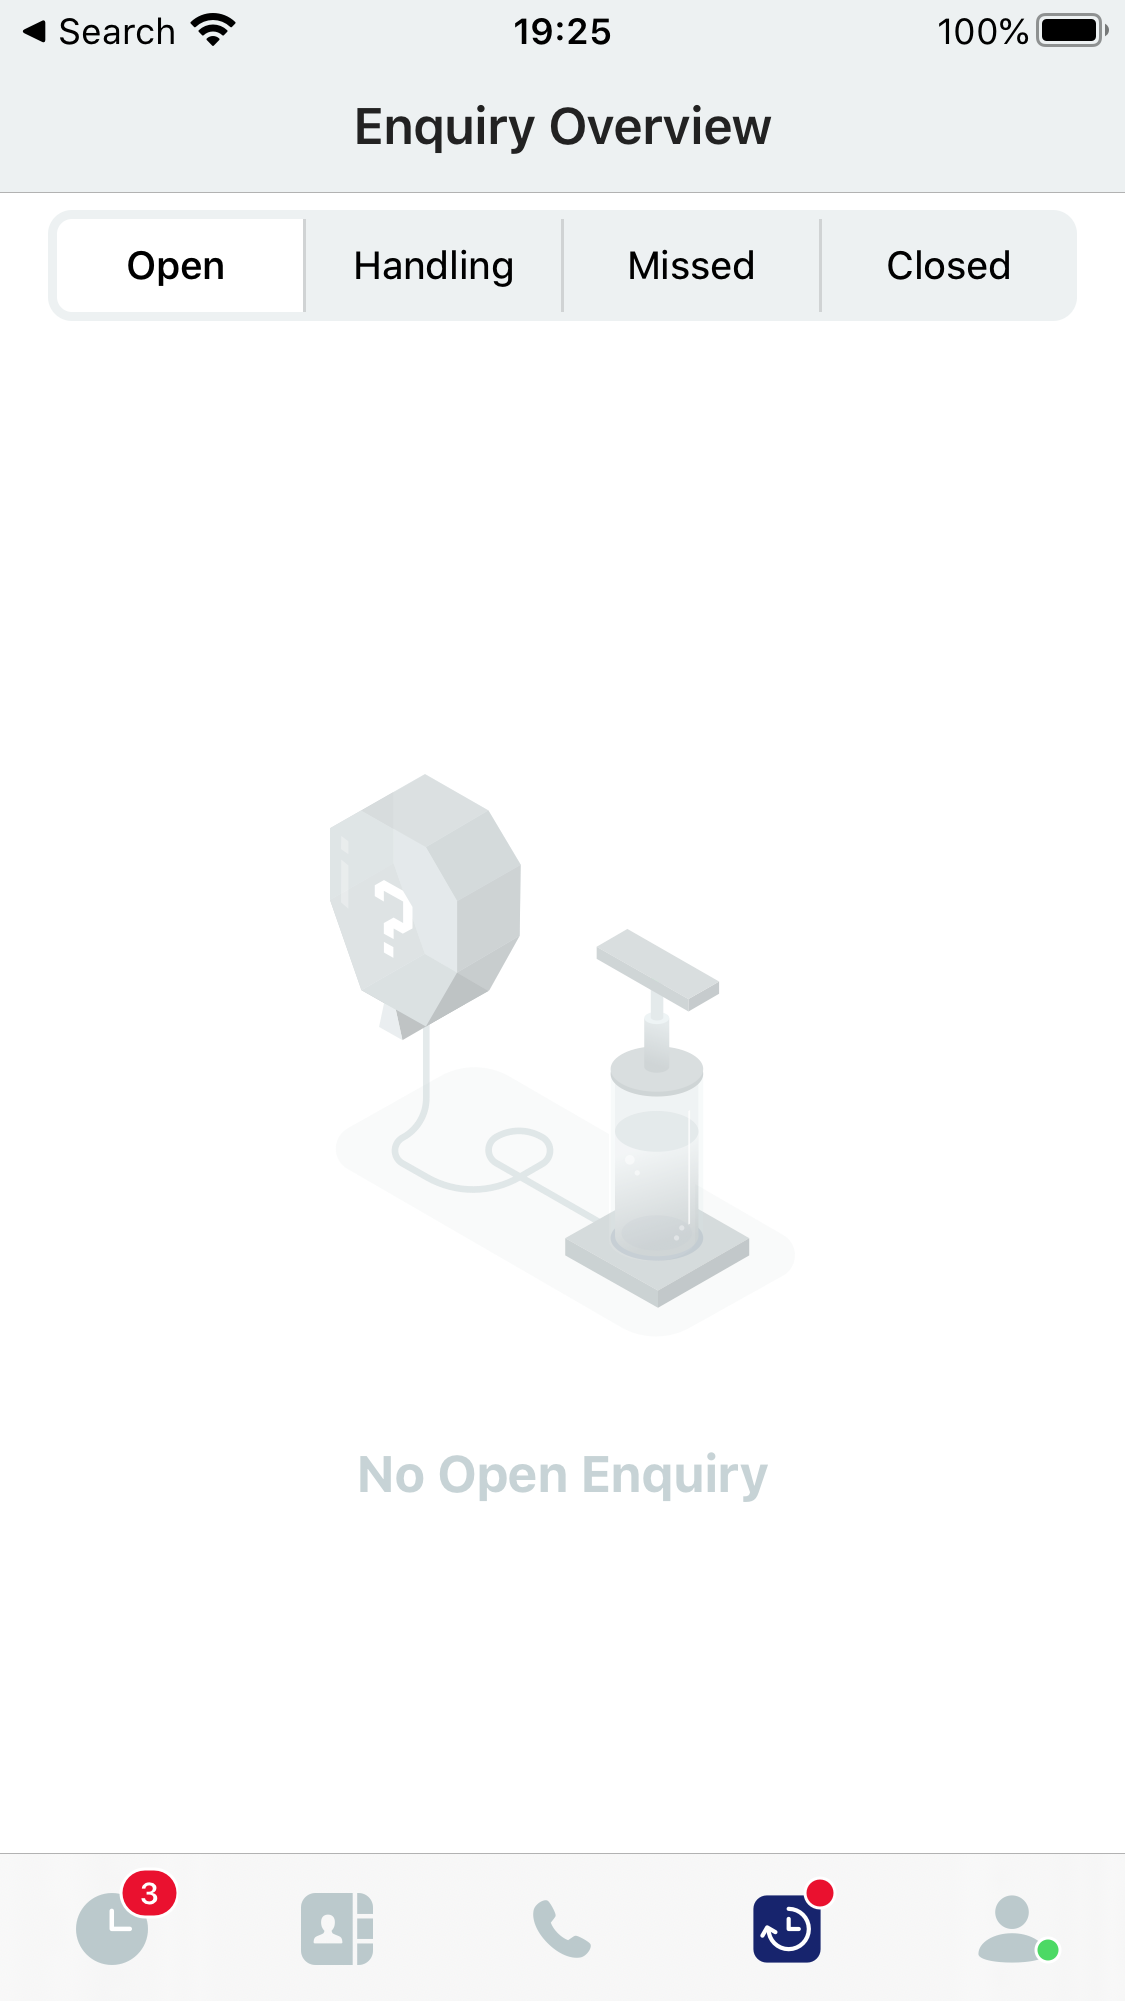 Open Enquiry Section